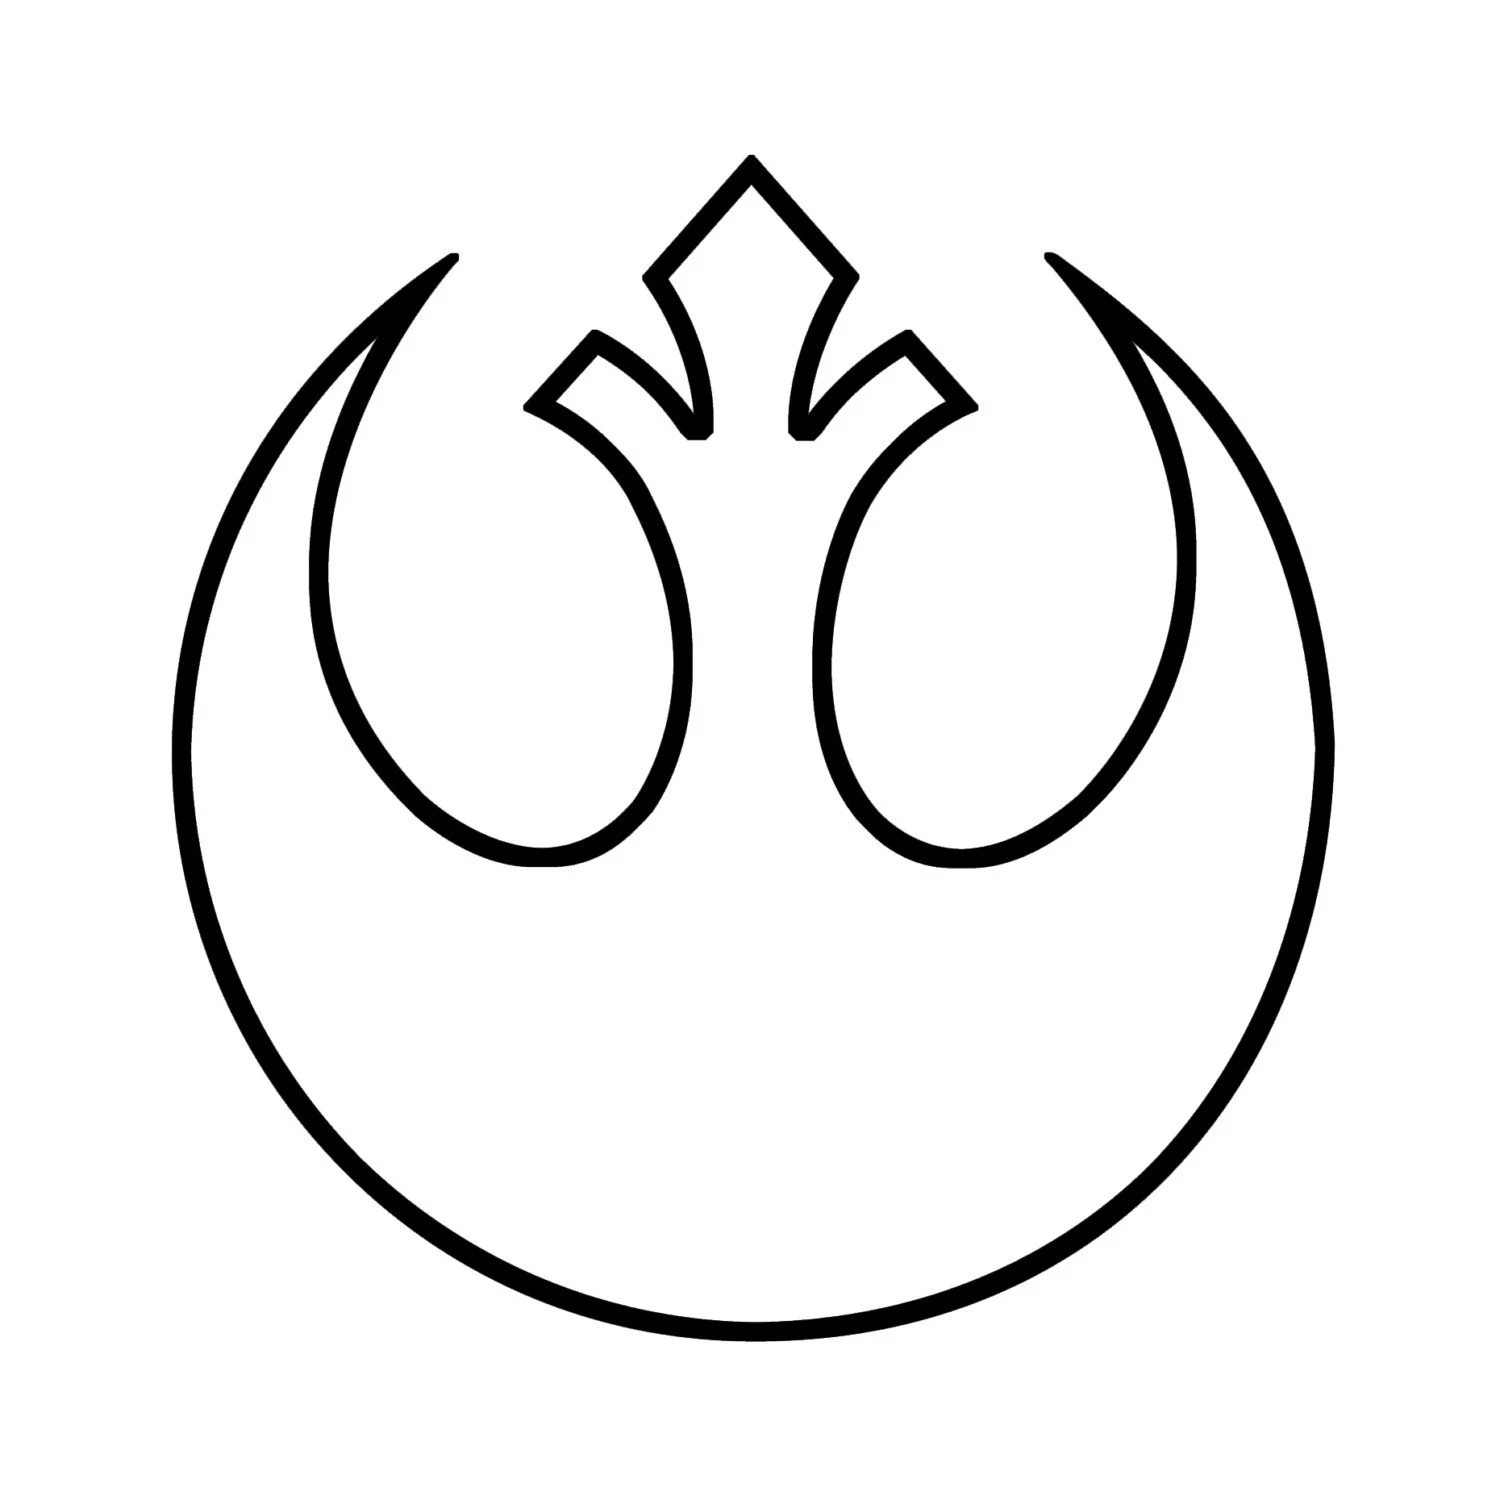 Star Wars Rebel Alliance Symbol Outline Decal for Car